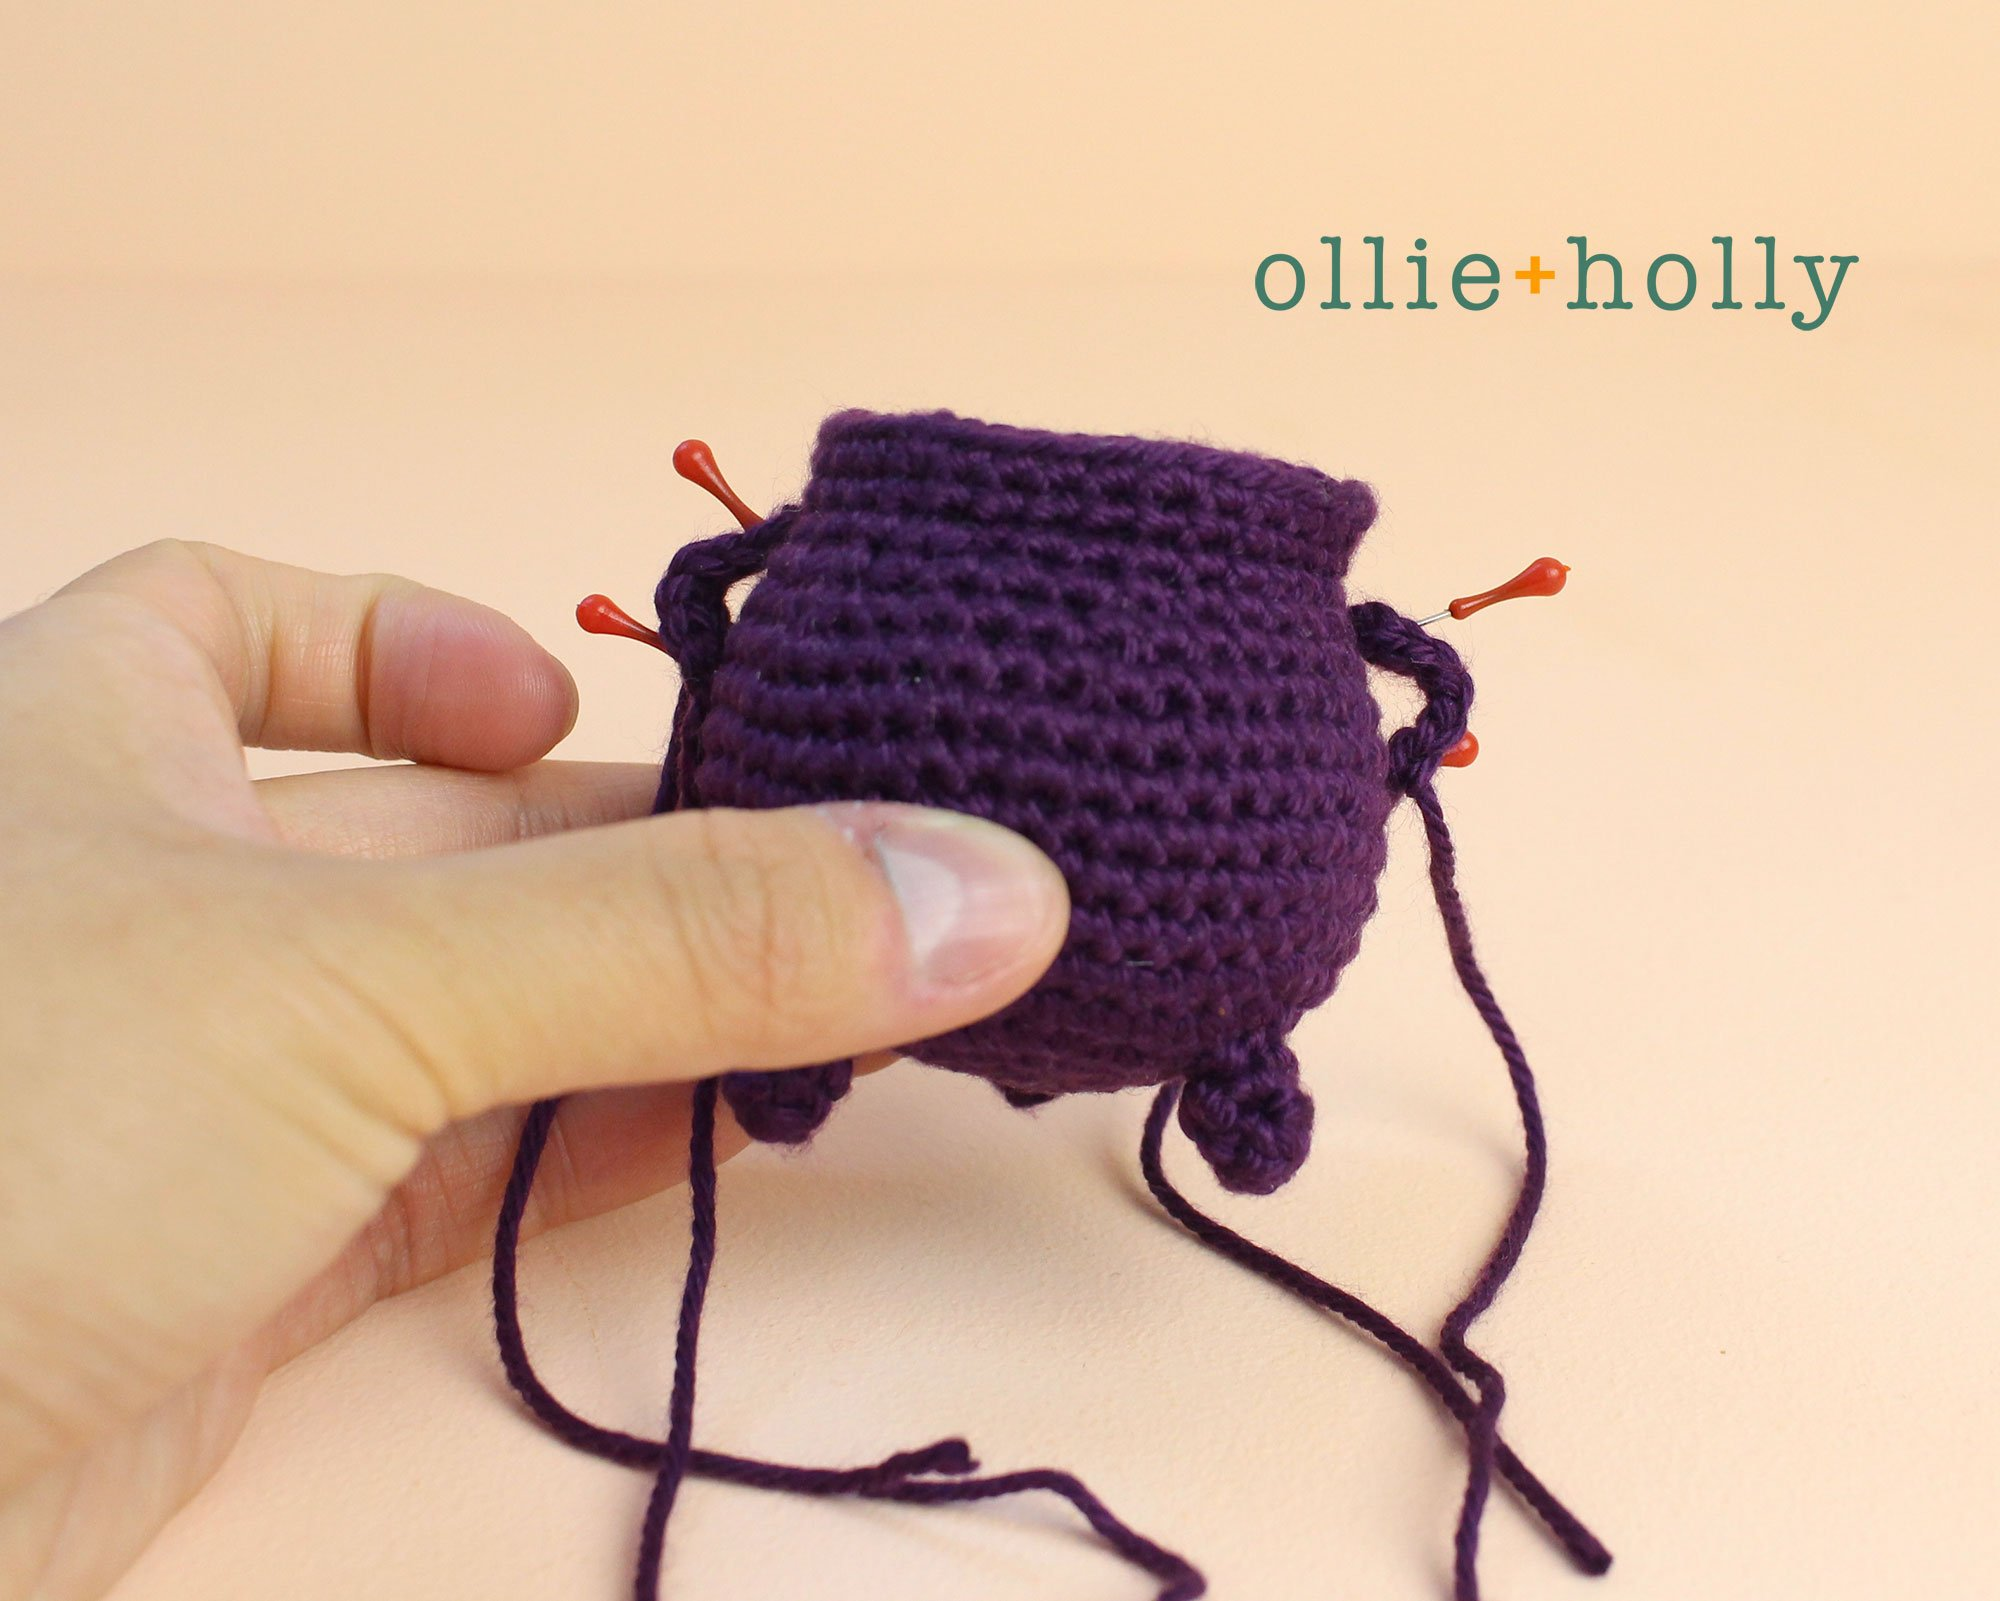 Free Halloween Witch's Cauldron Ornament Amigurumi Crochet Pattern Step 10